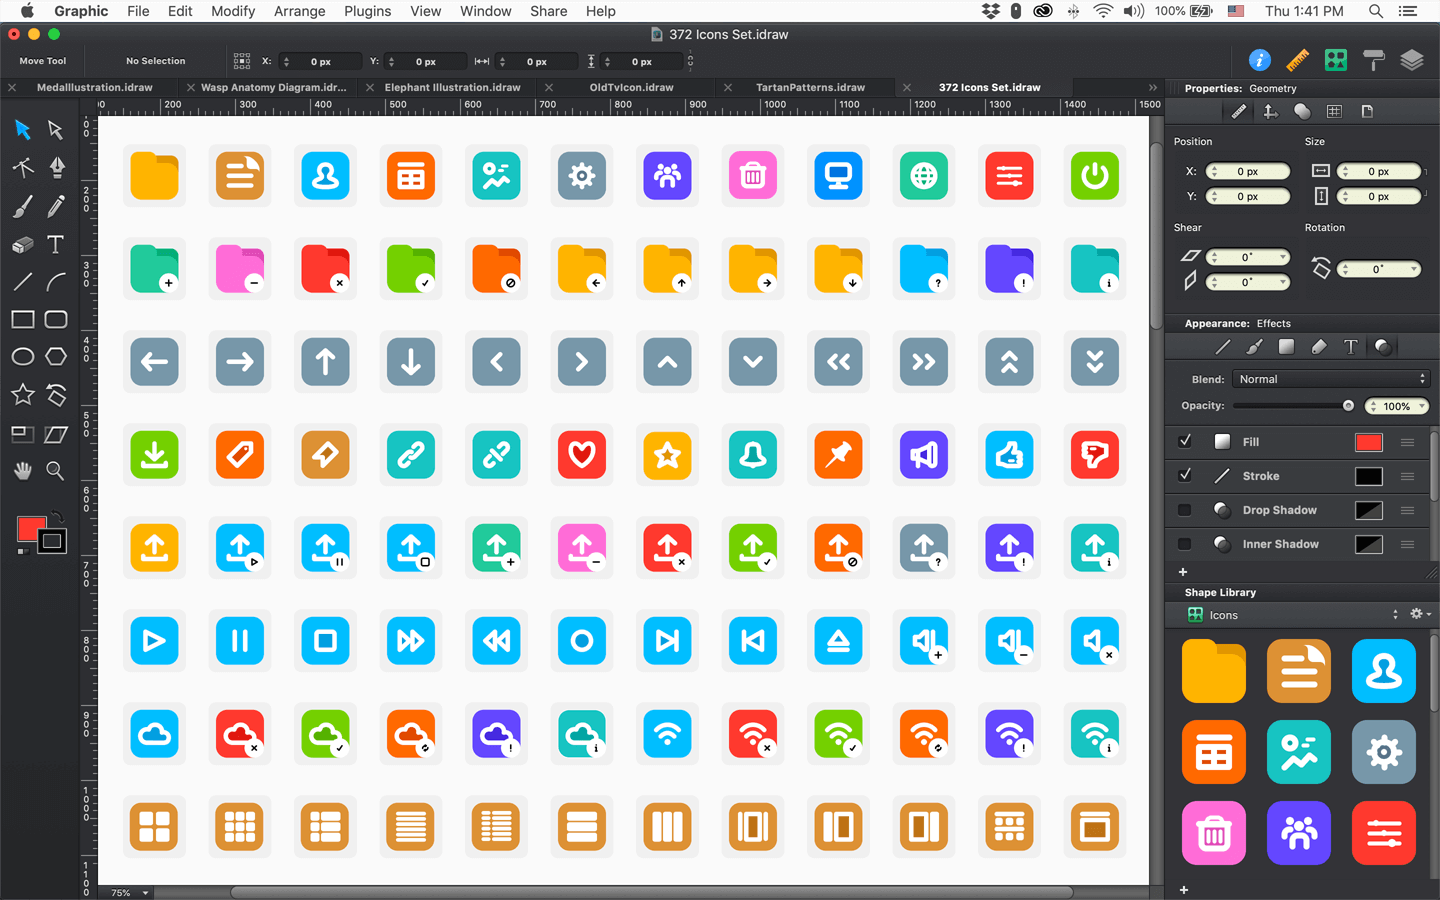 Graphic Mac Illustration And Graphic Design Software